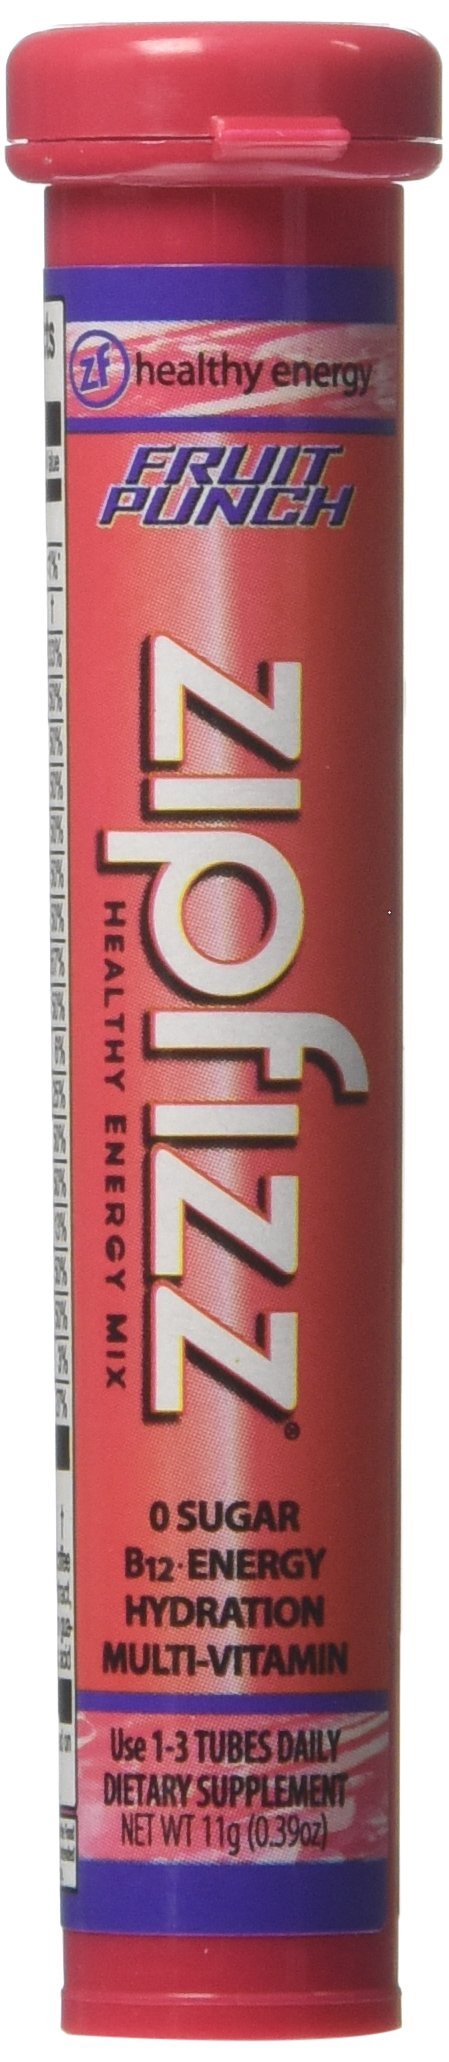 Zipfizz Fruit Punch Flavored Drink Packets, 20 Count